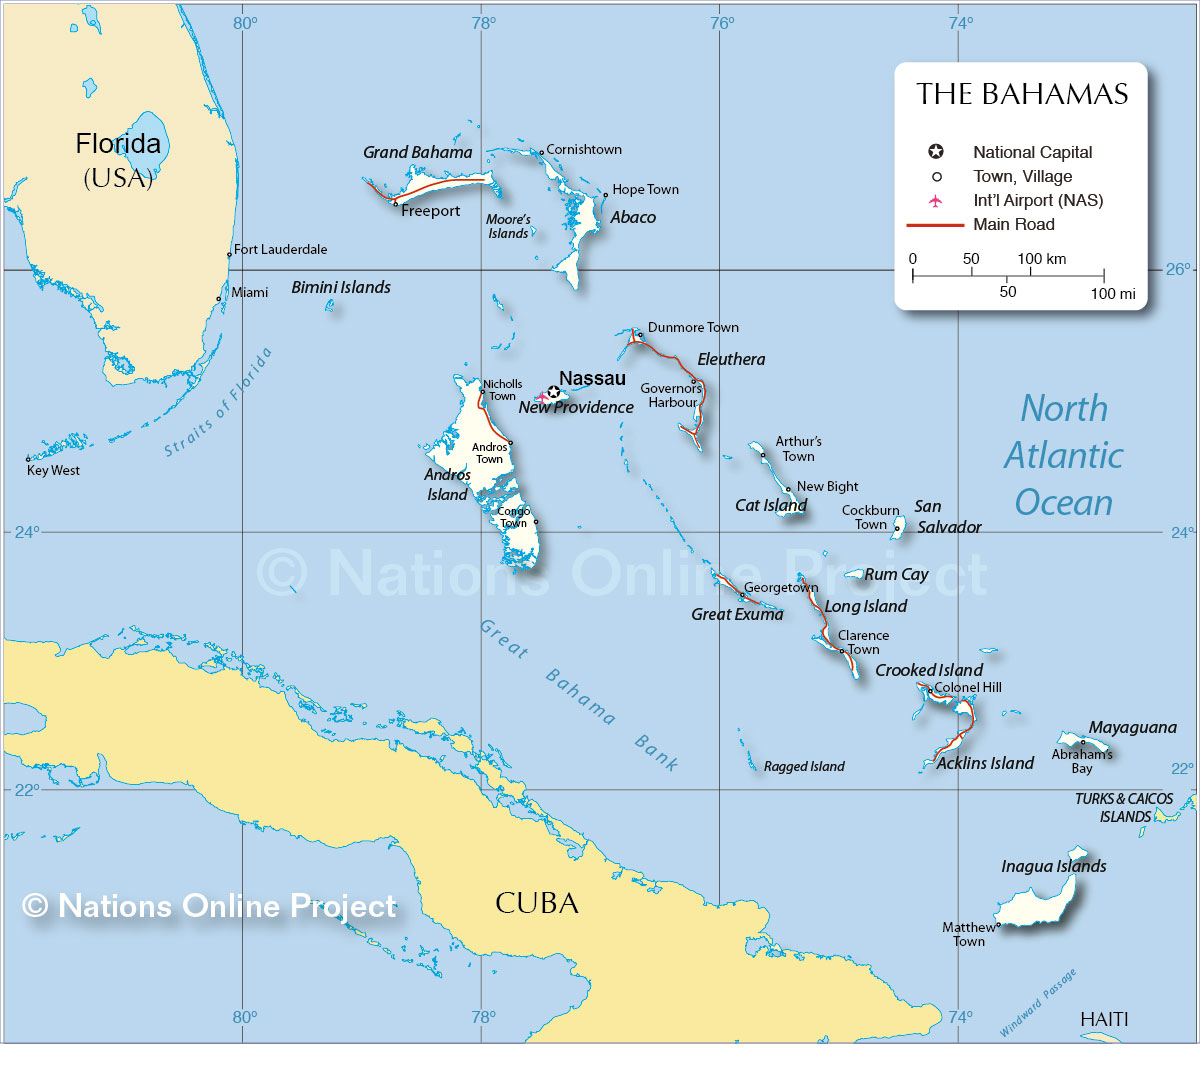 Map Of The Bahamas Map of The Bahamas   Nations Online Project Map Of The Bahamas